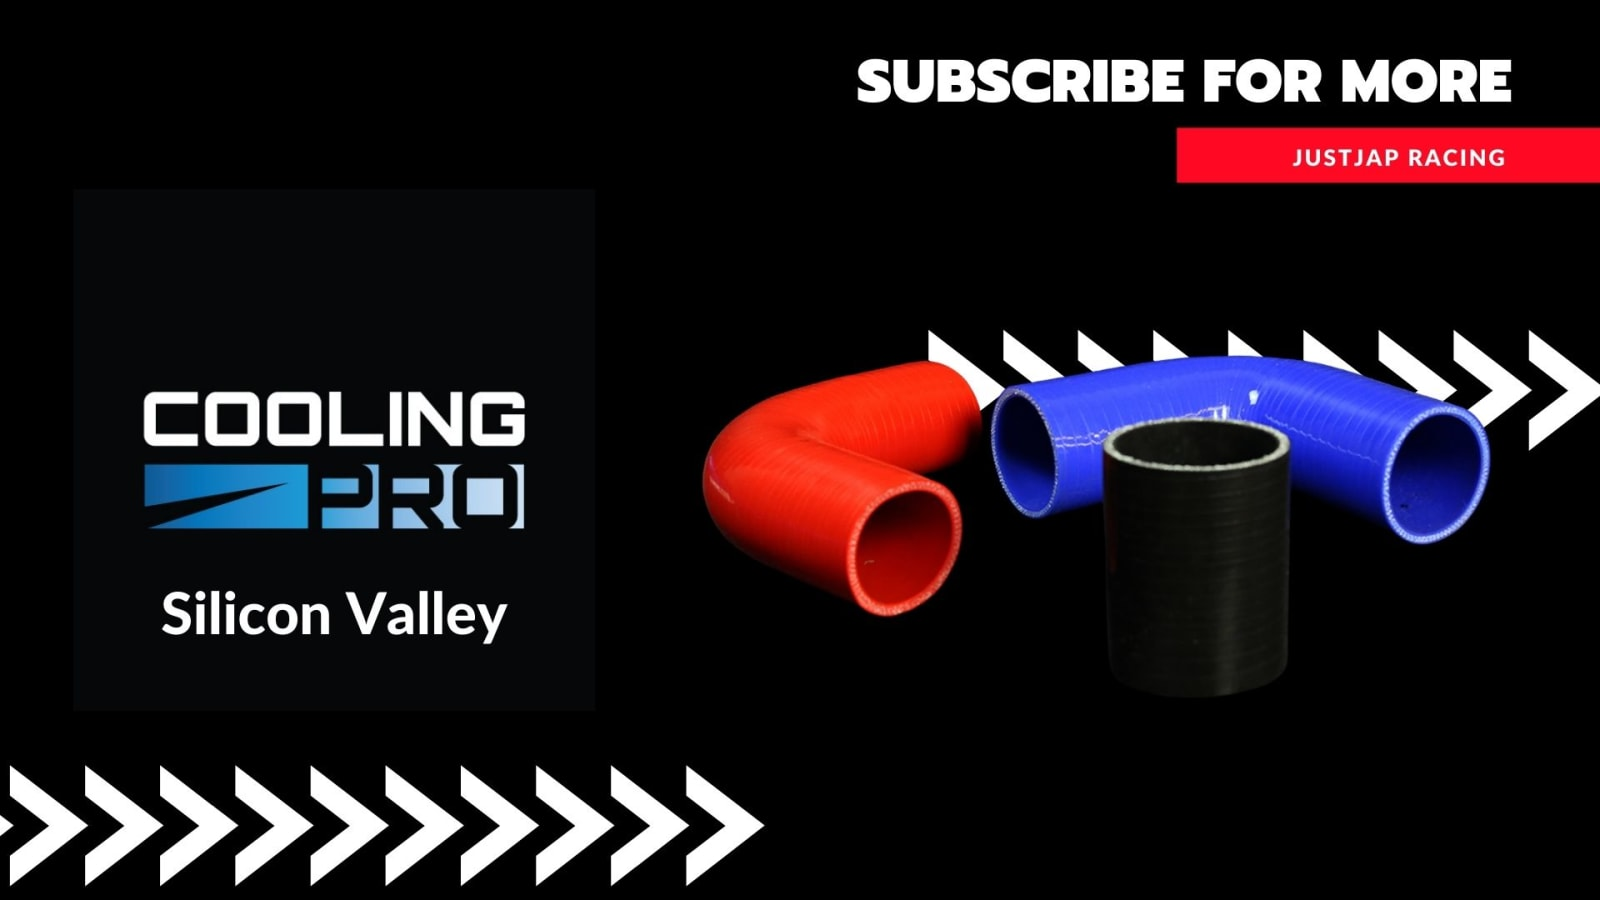 Cooling Pro Silicone 2.75 Inch / 70mm Straight Joiner Hose